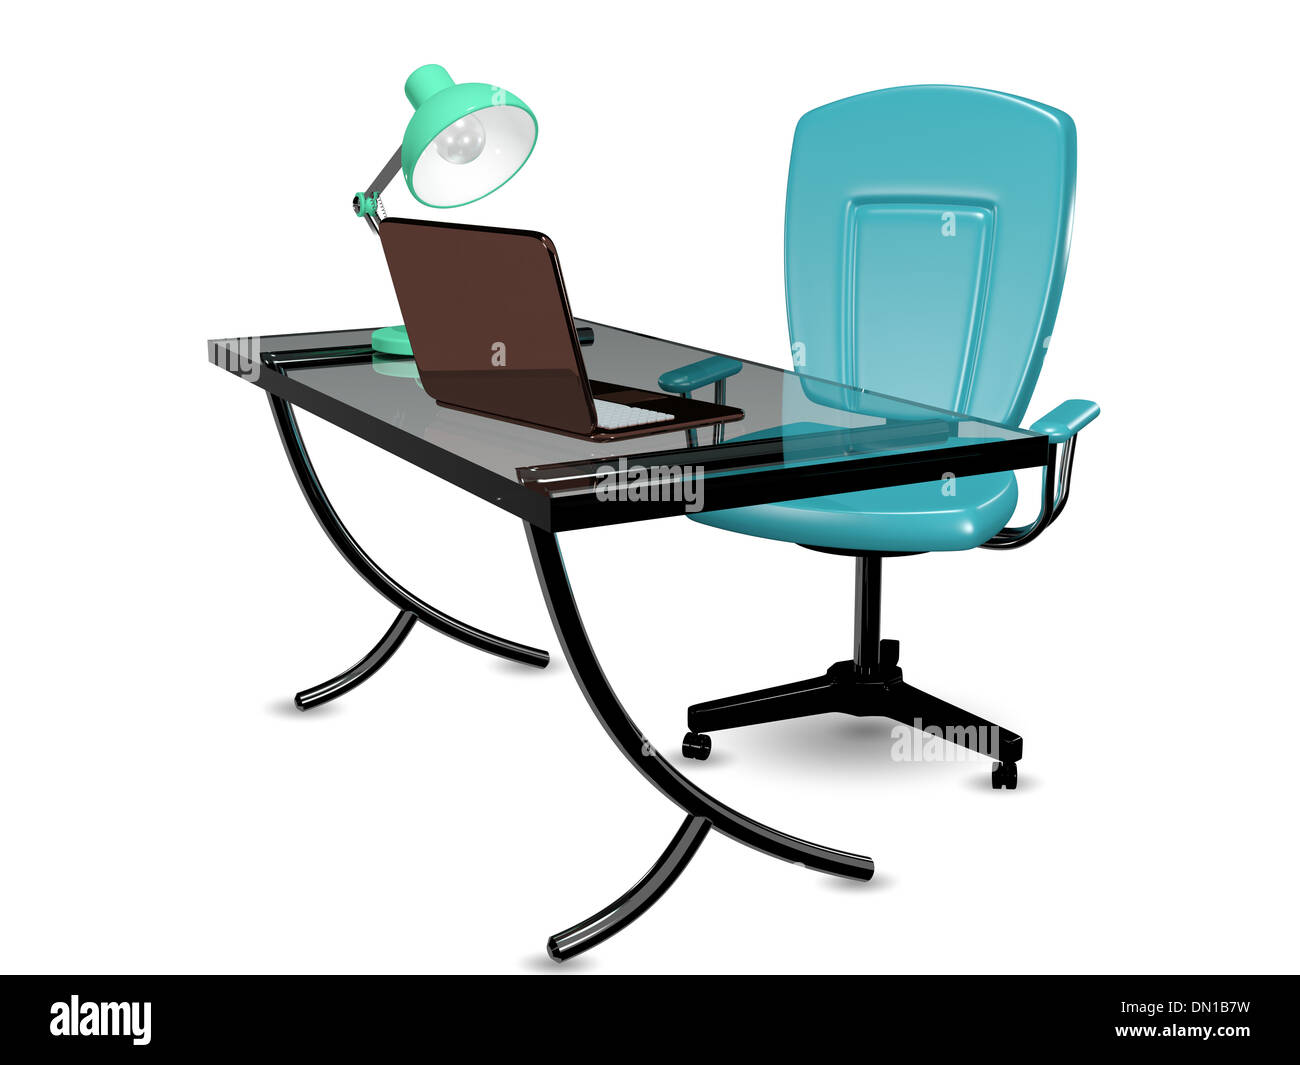 Awesome 3D Abstract Illustration Glass Office Desk And Chair Stock Download Free Architecture Designs Embacsunscenecom